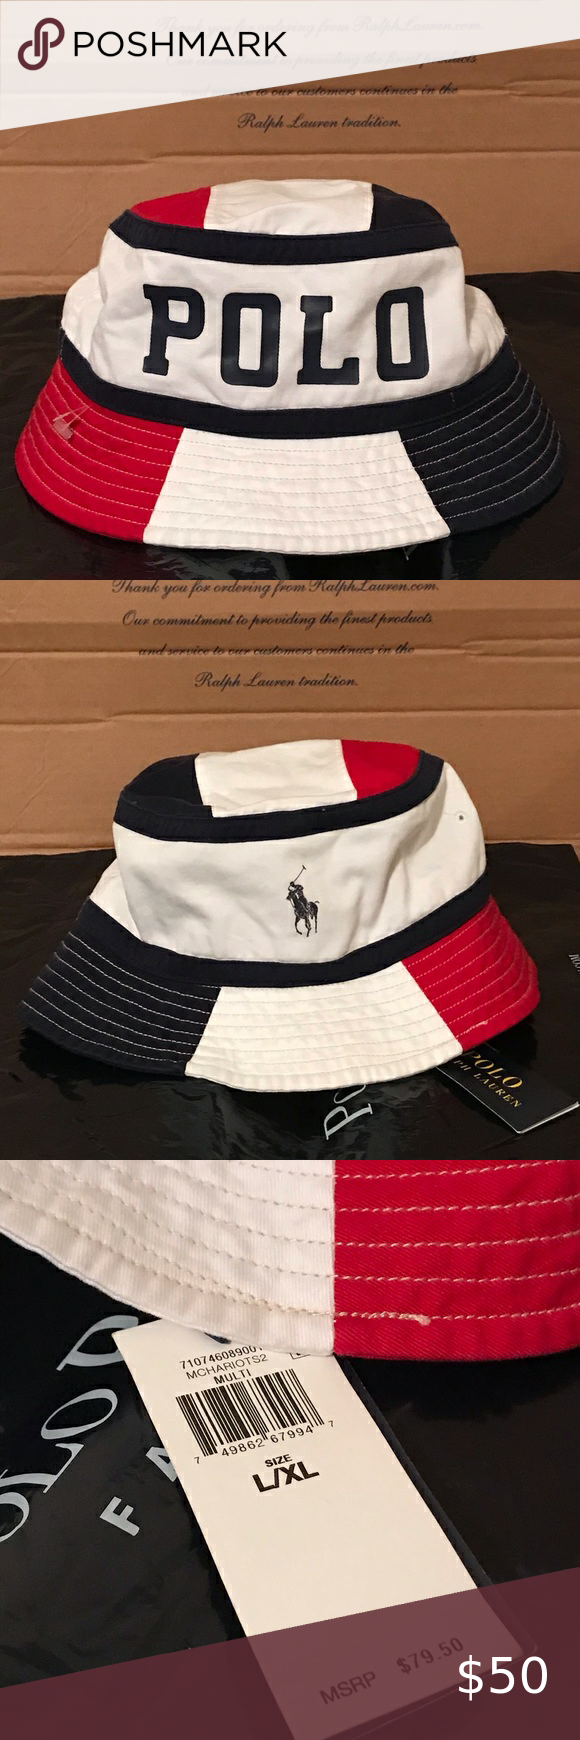 Polo Ralph Lauren Spell Out Bucket Hat Size L Xl Polo Ralph Lauren Hat Sizes Ralph Lauren